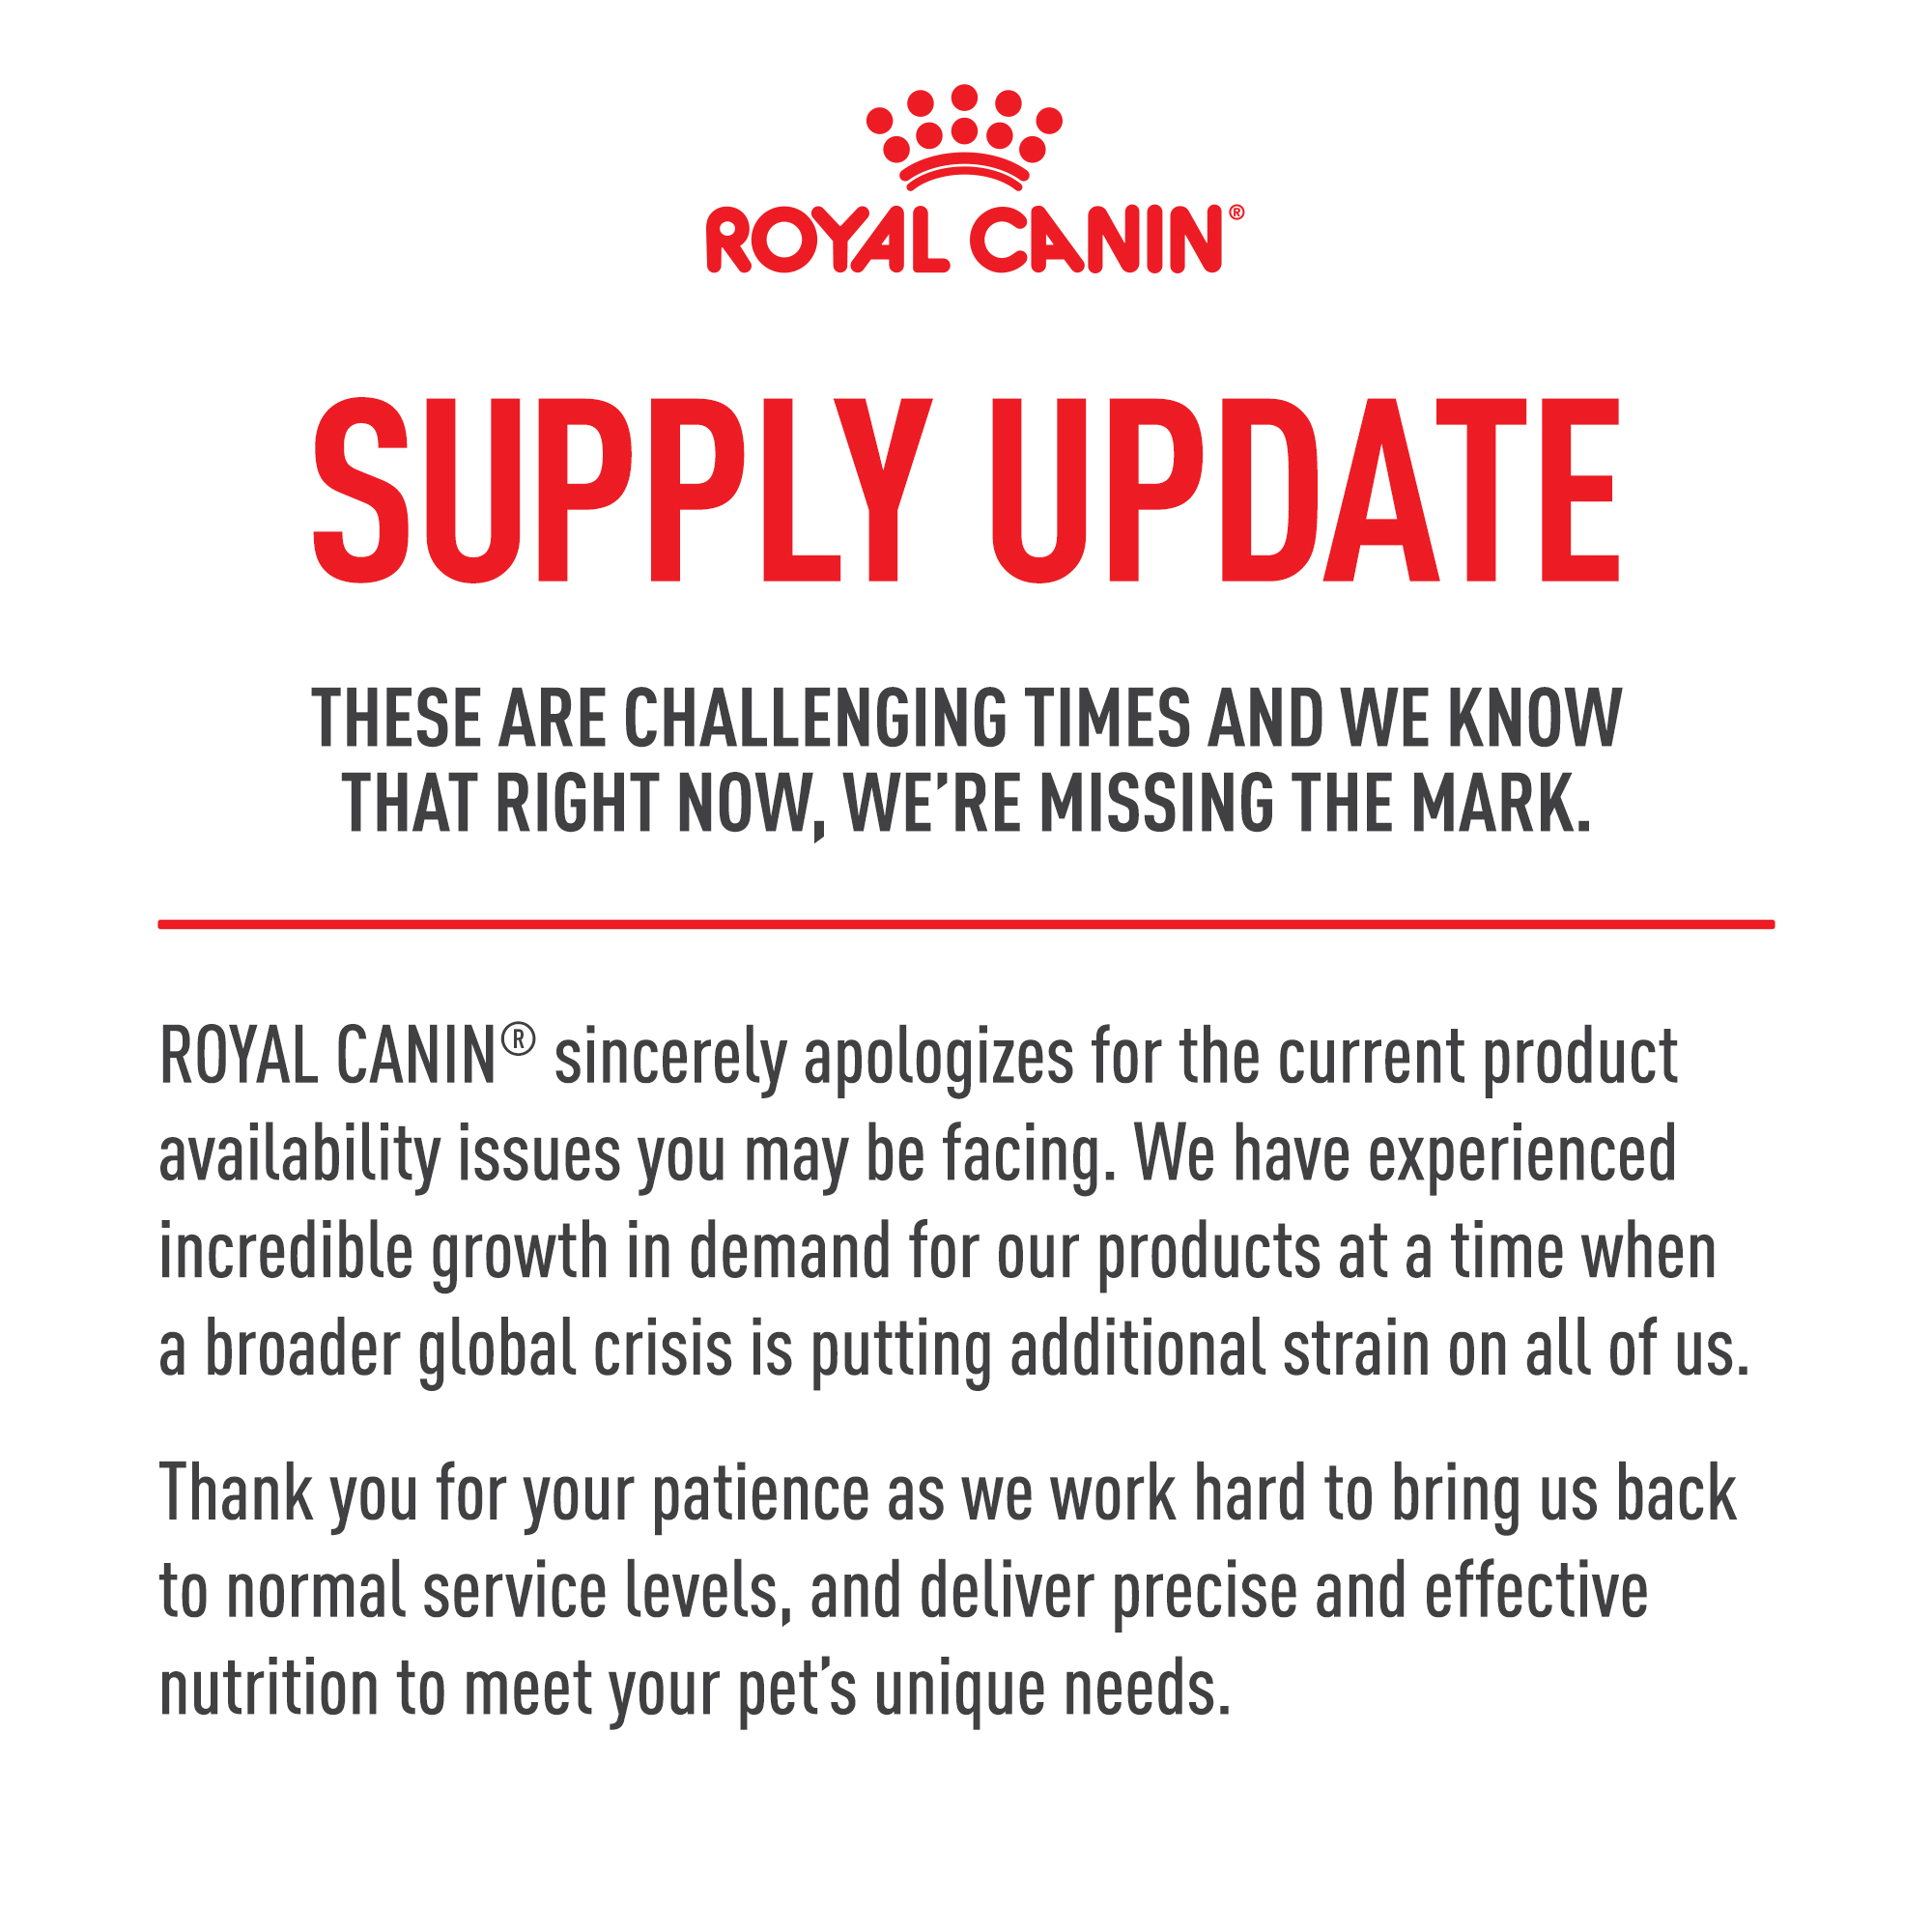 rc supply update